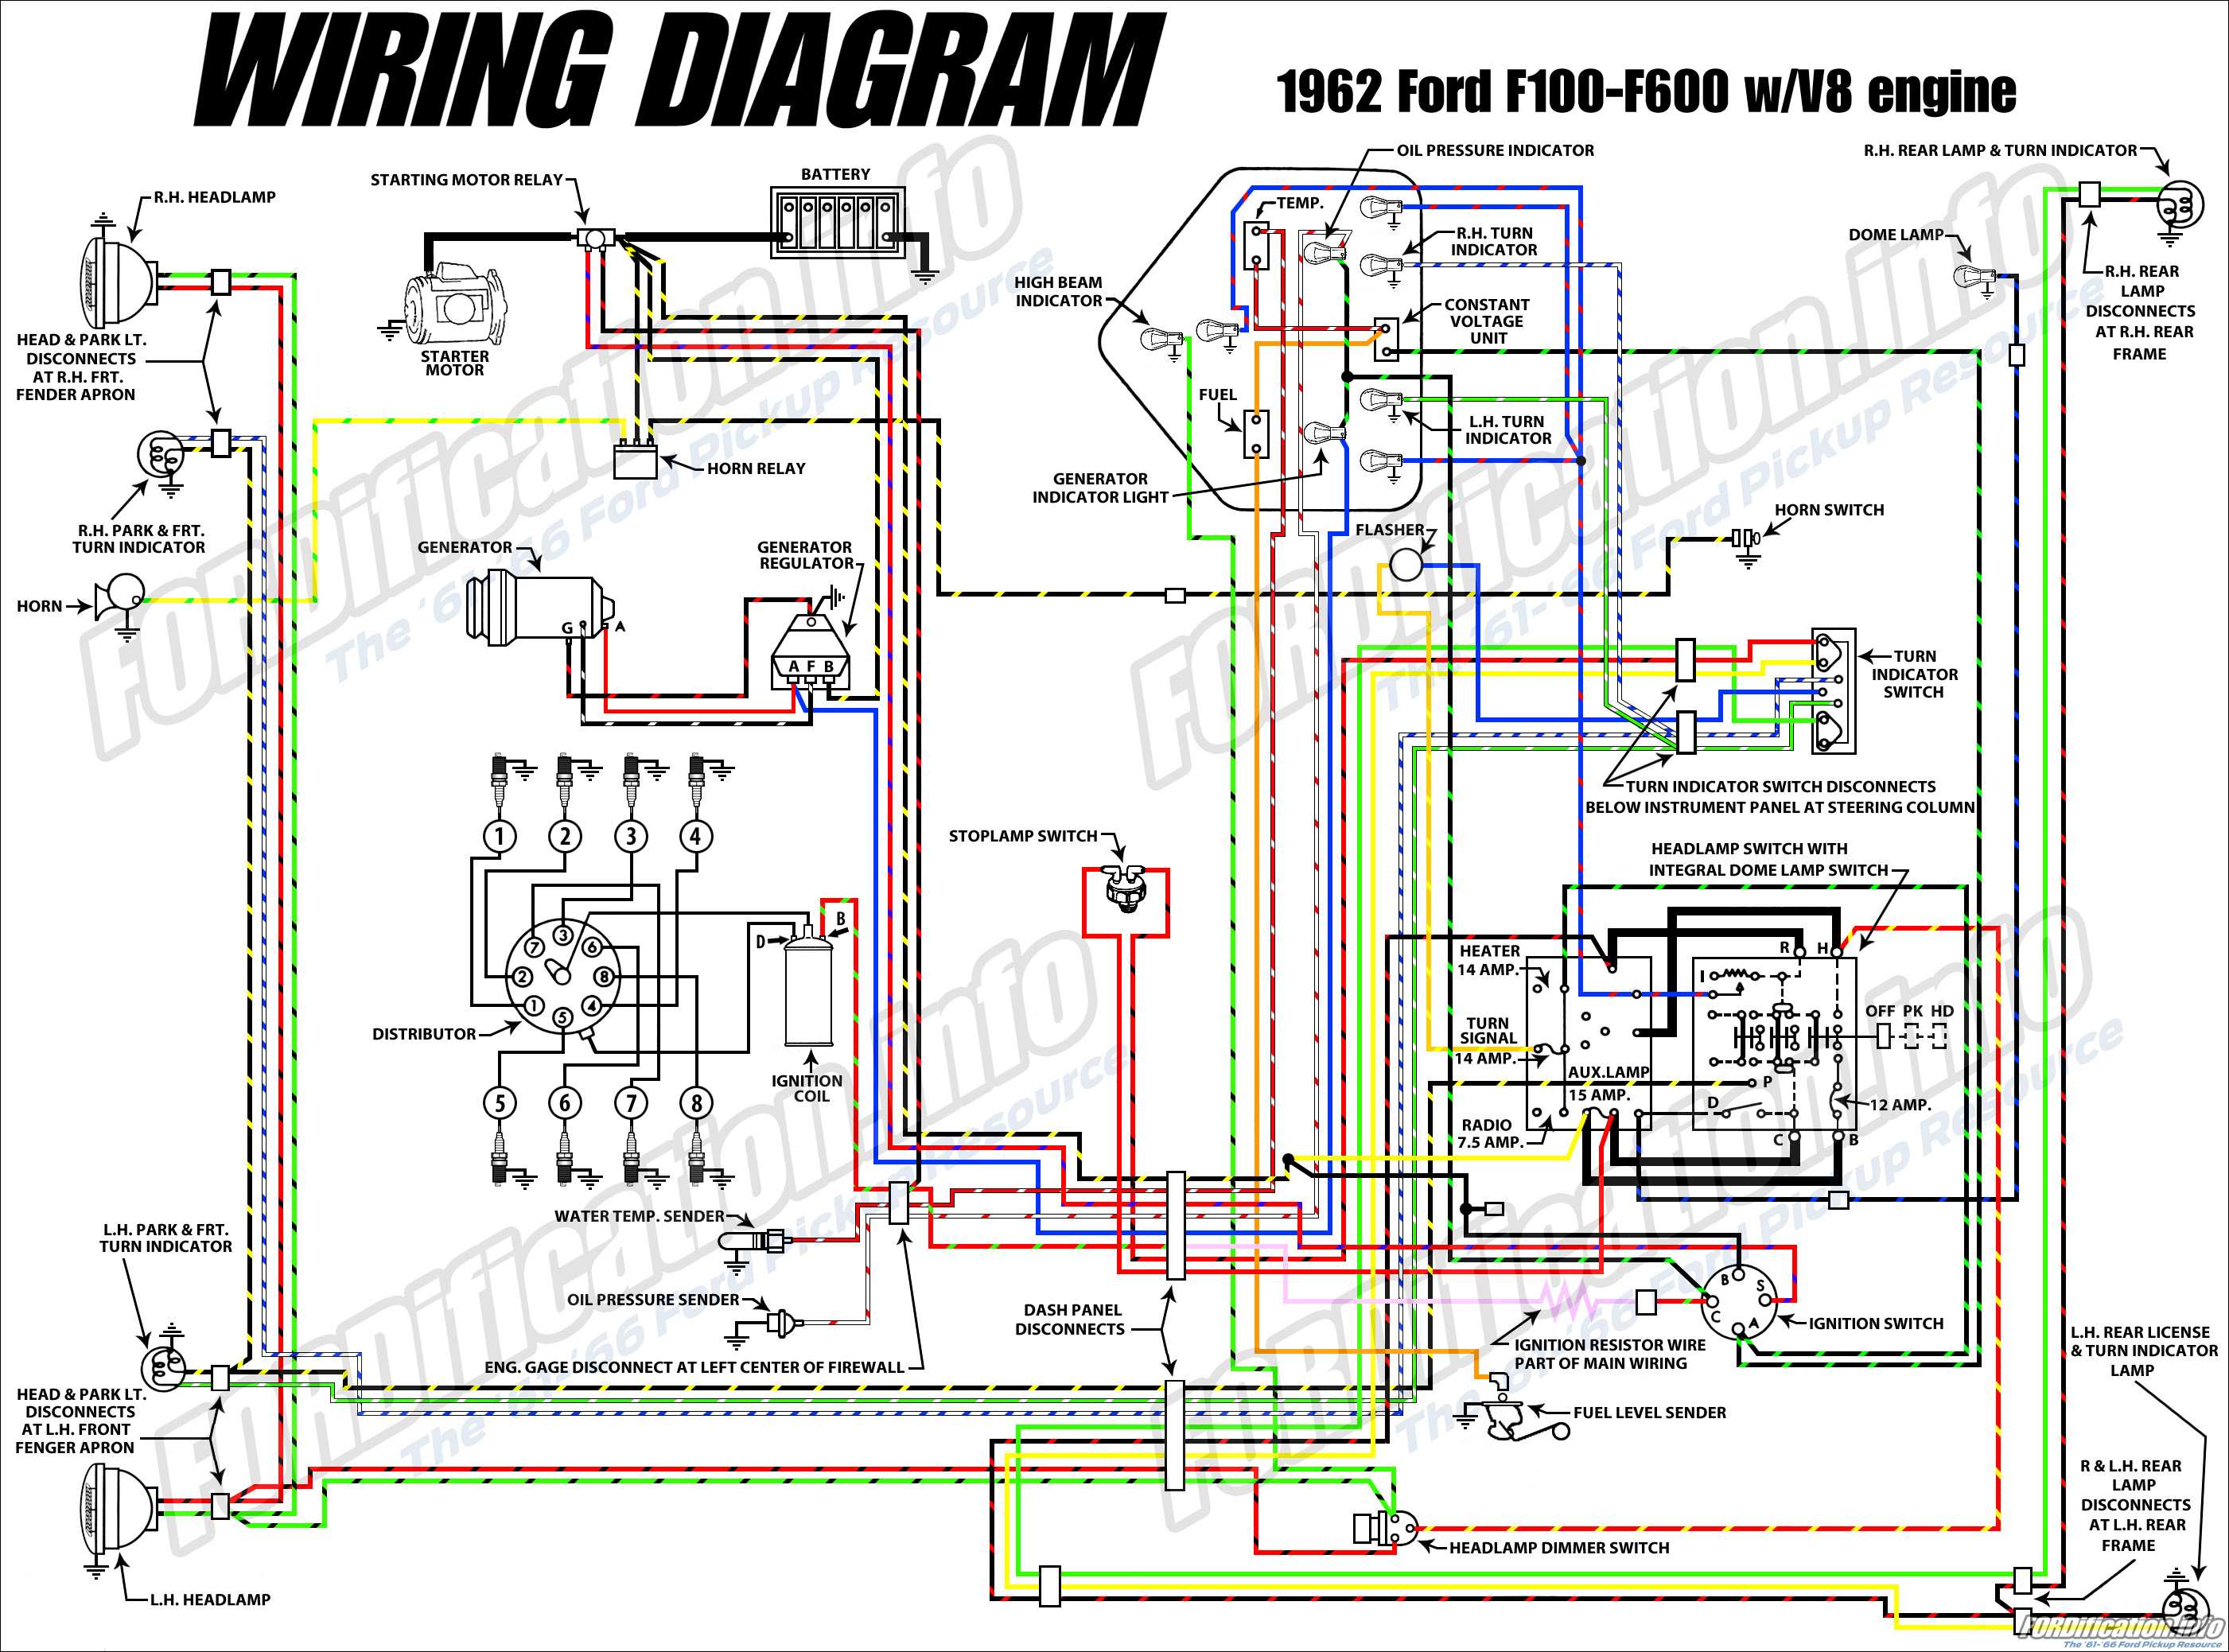 12 Volt Relay Wiring Diagrams For 1972 F100 Fuel Filter Location 2003 Hyundai Santa Fe Wire Diag 2005vtx Jeanjaures37 Fr